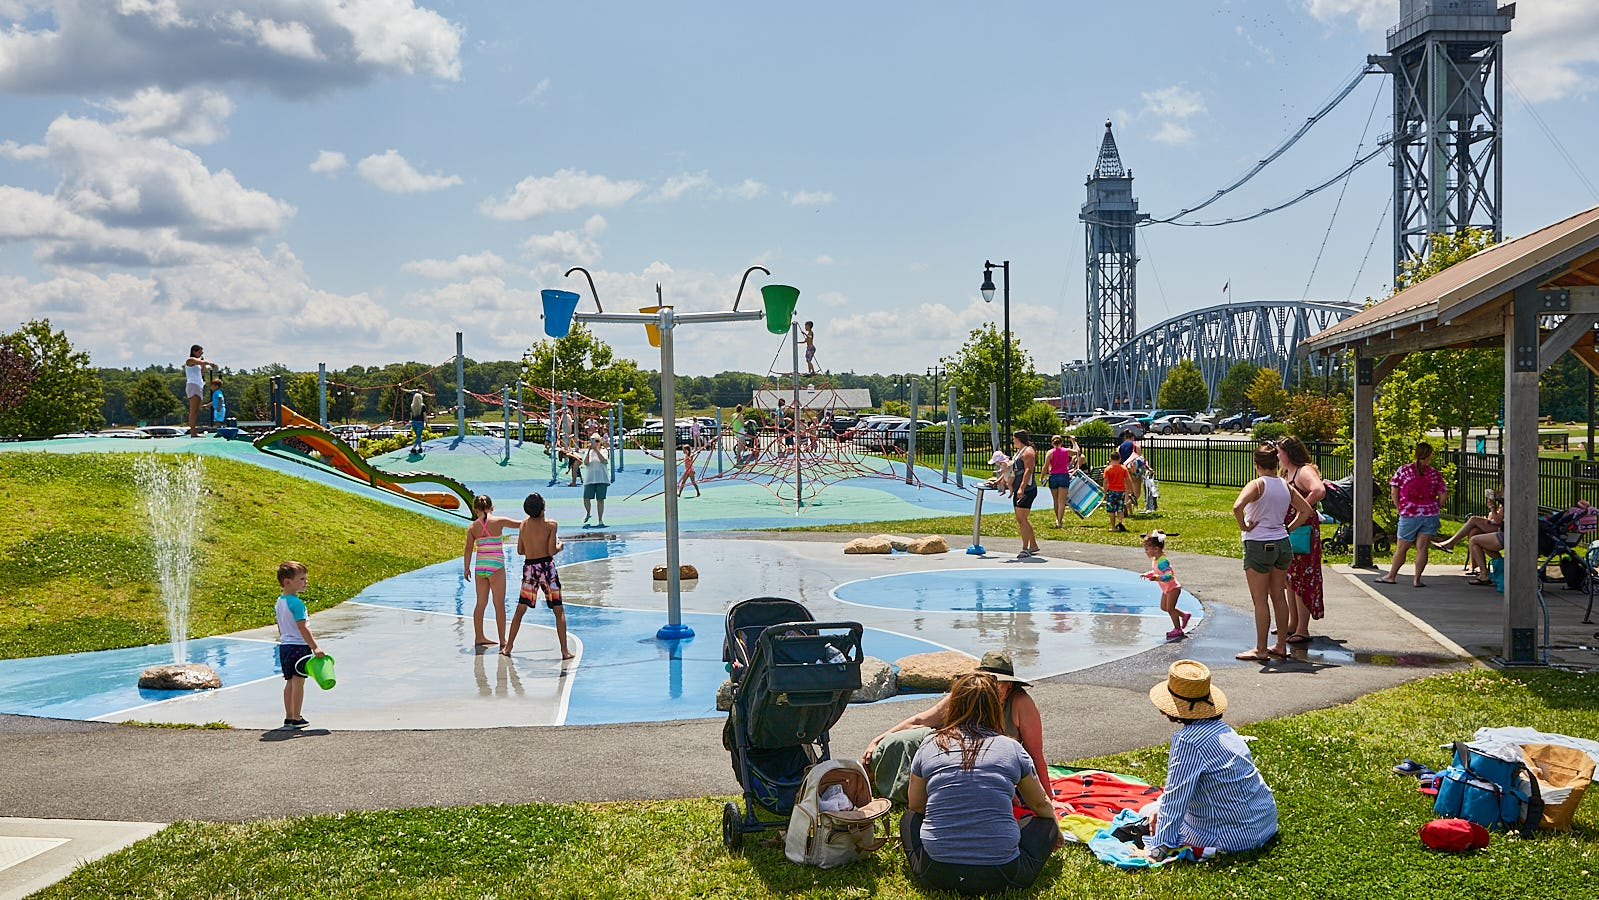 Buzzards Bay Park in Bourne reopens children's splash pad on canal.